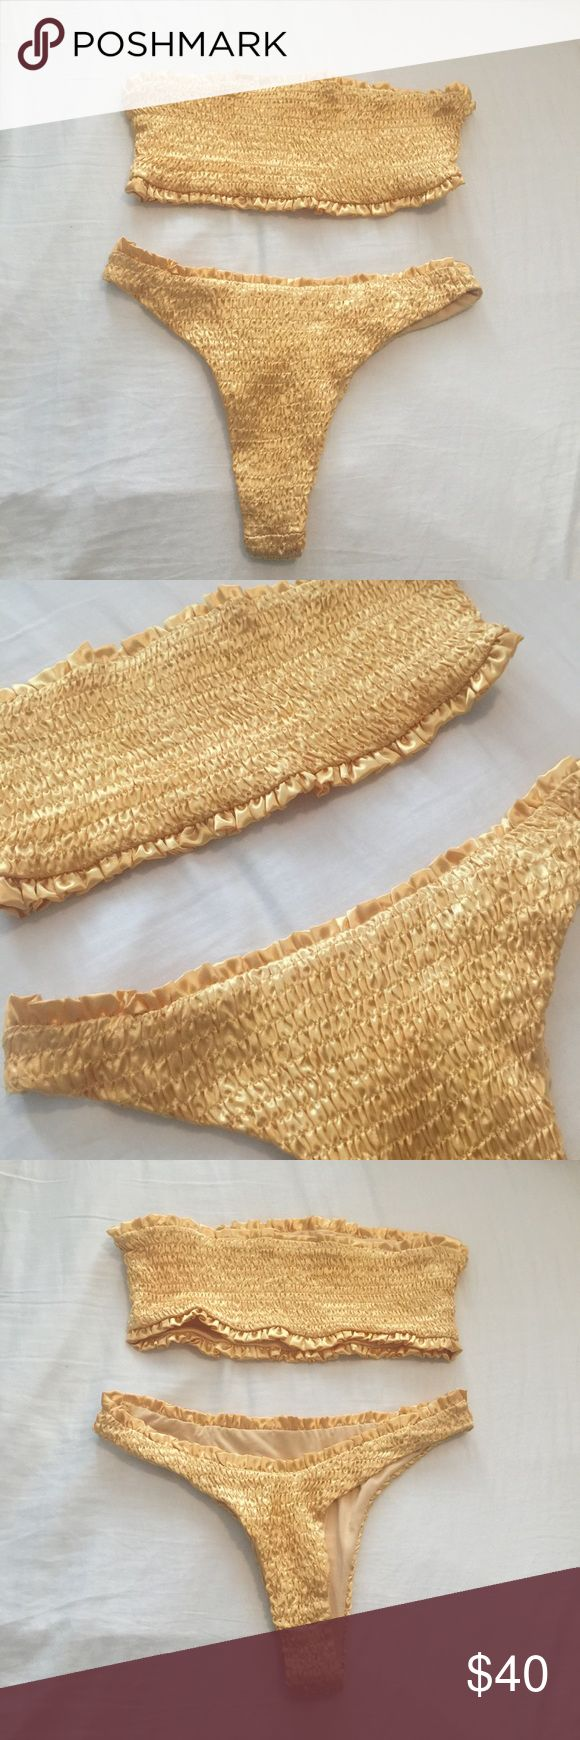 "Yellow - Gold Bandeau Bikini Set NWOT Size Small for top and bottom / Yellow- Gold Bandeau Bikini Set / Top is bandeau style,  bottoms are very cheeky Brazilian cut / NEW without tags! – never been worn/ ▫️PRICE IS FIRM!   Laying Flat: Across bandeau top 12"" Full length bandeau top 6"" Across Waist (bottoms) 13""   ✨will not model Swim Bikinis"